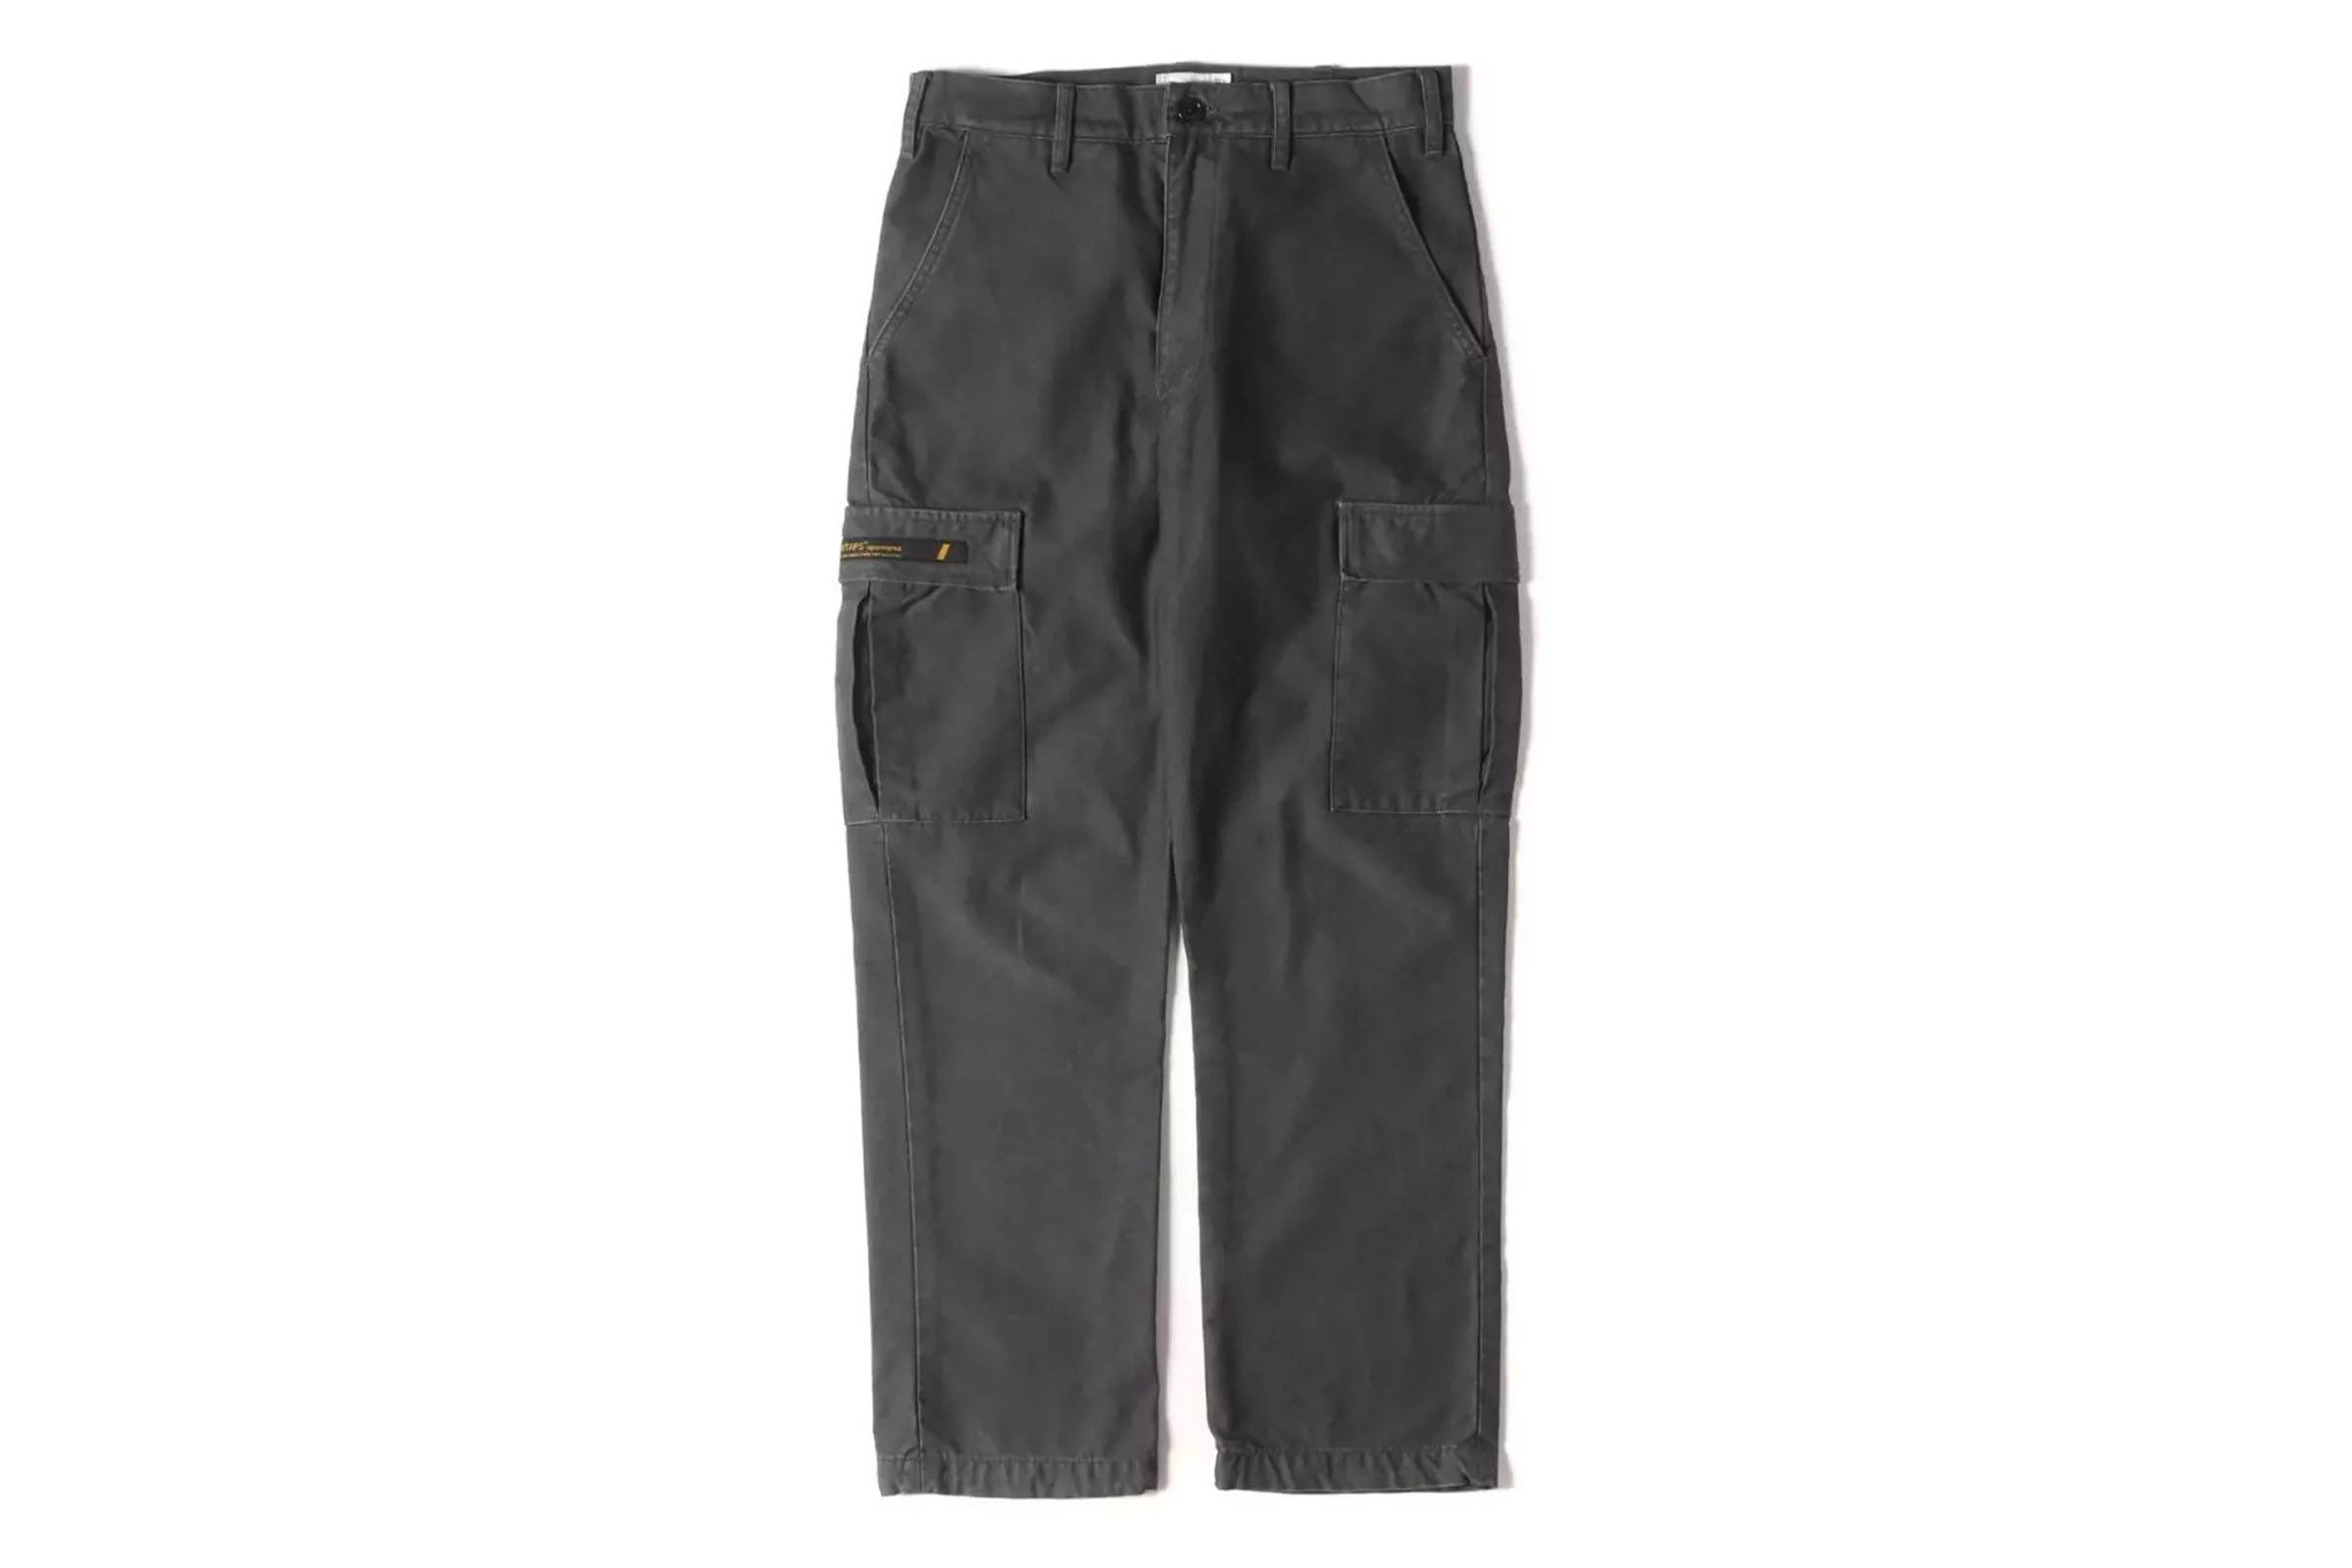 WTAPS Jungle Country Pant